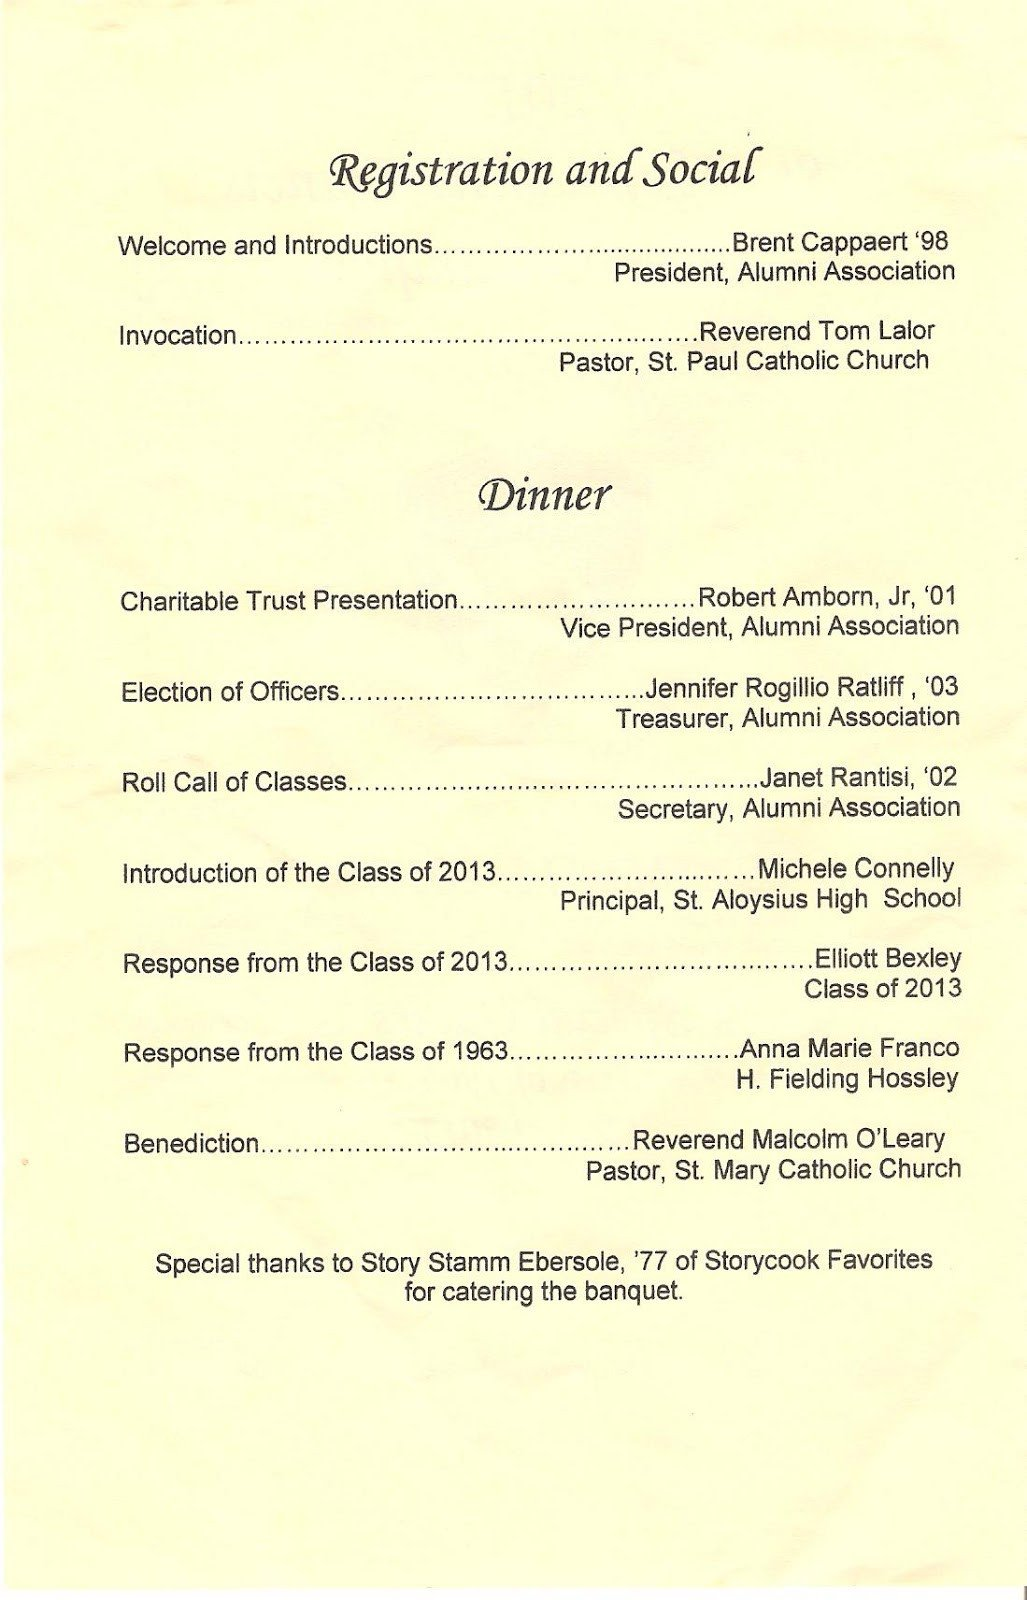 Family Reunion Banquet Program Sample Class Of 1959 2013 St Al St Francis Alumni Banquet